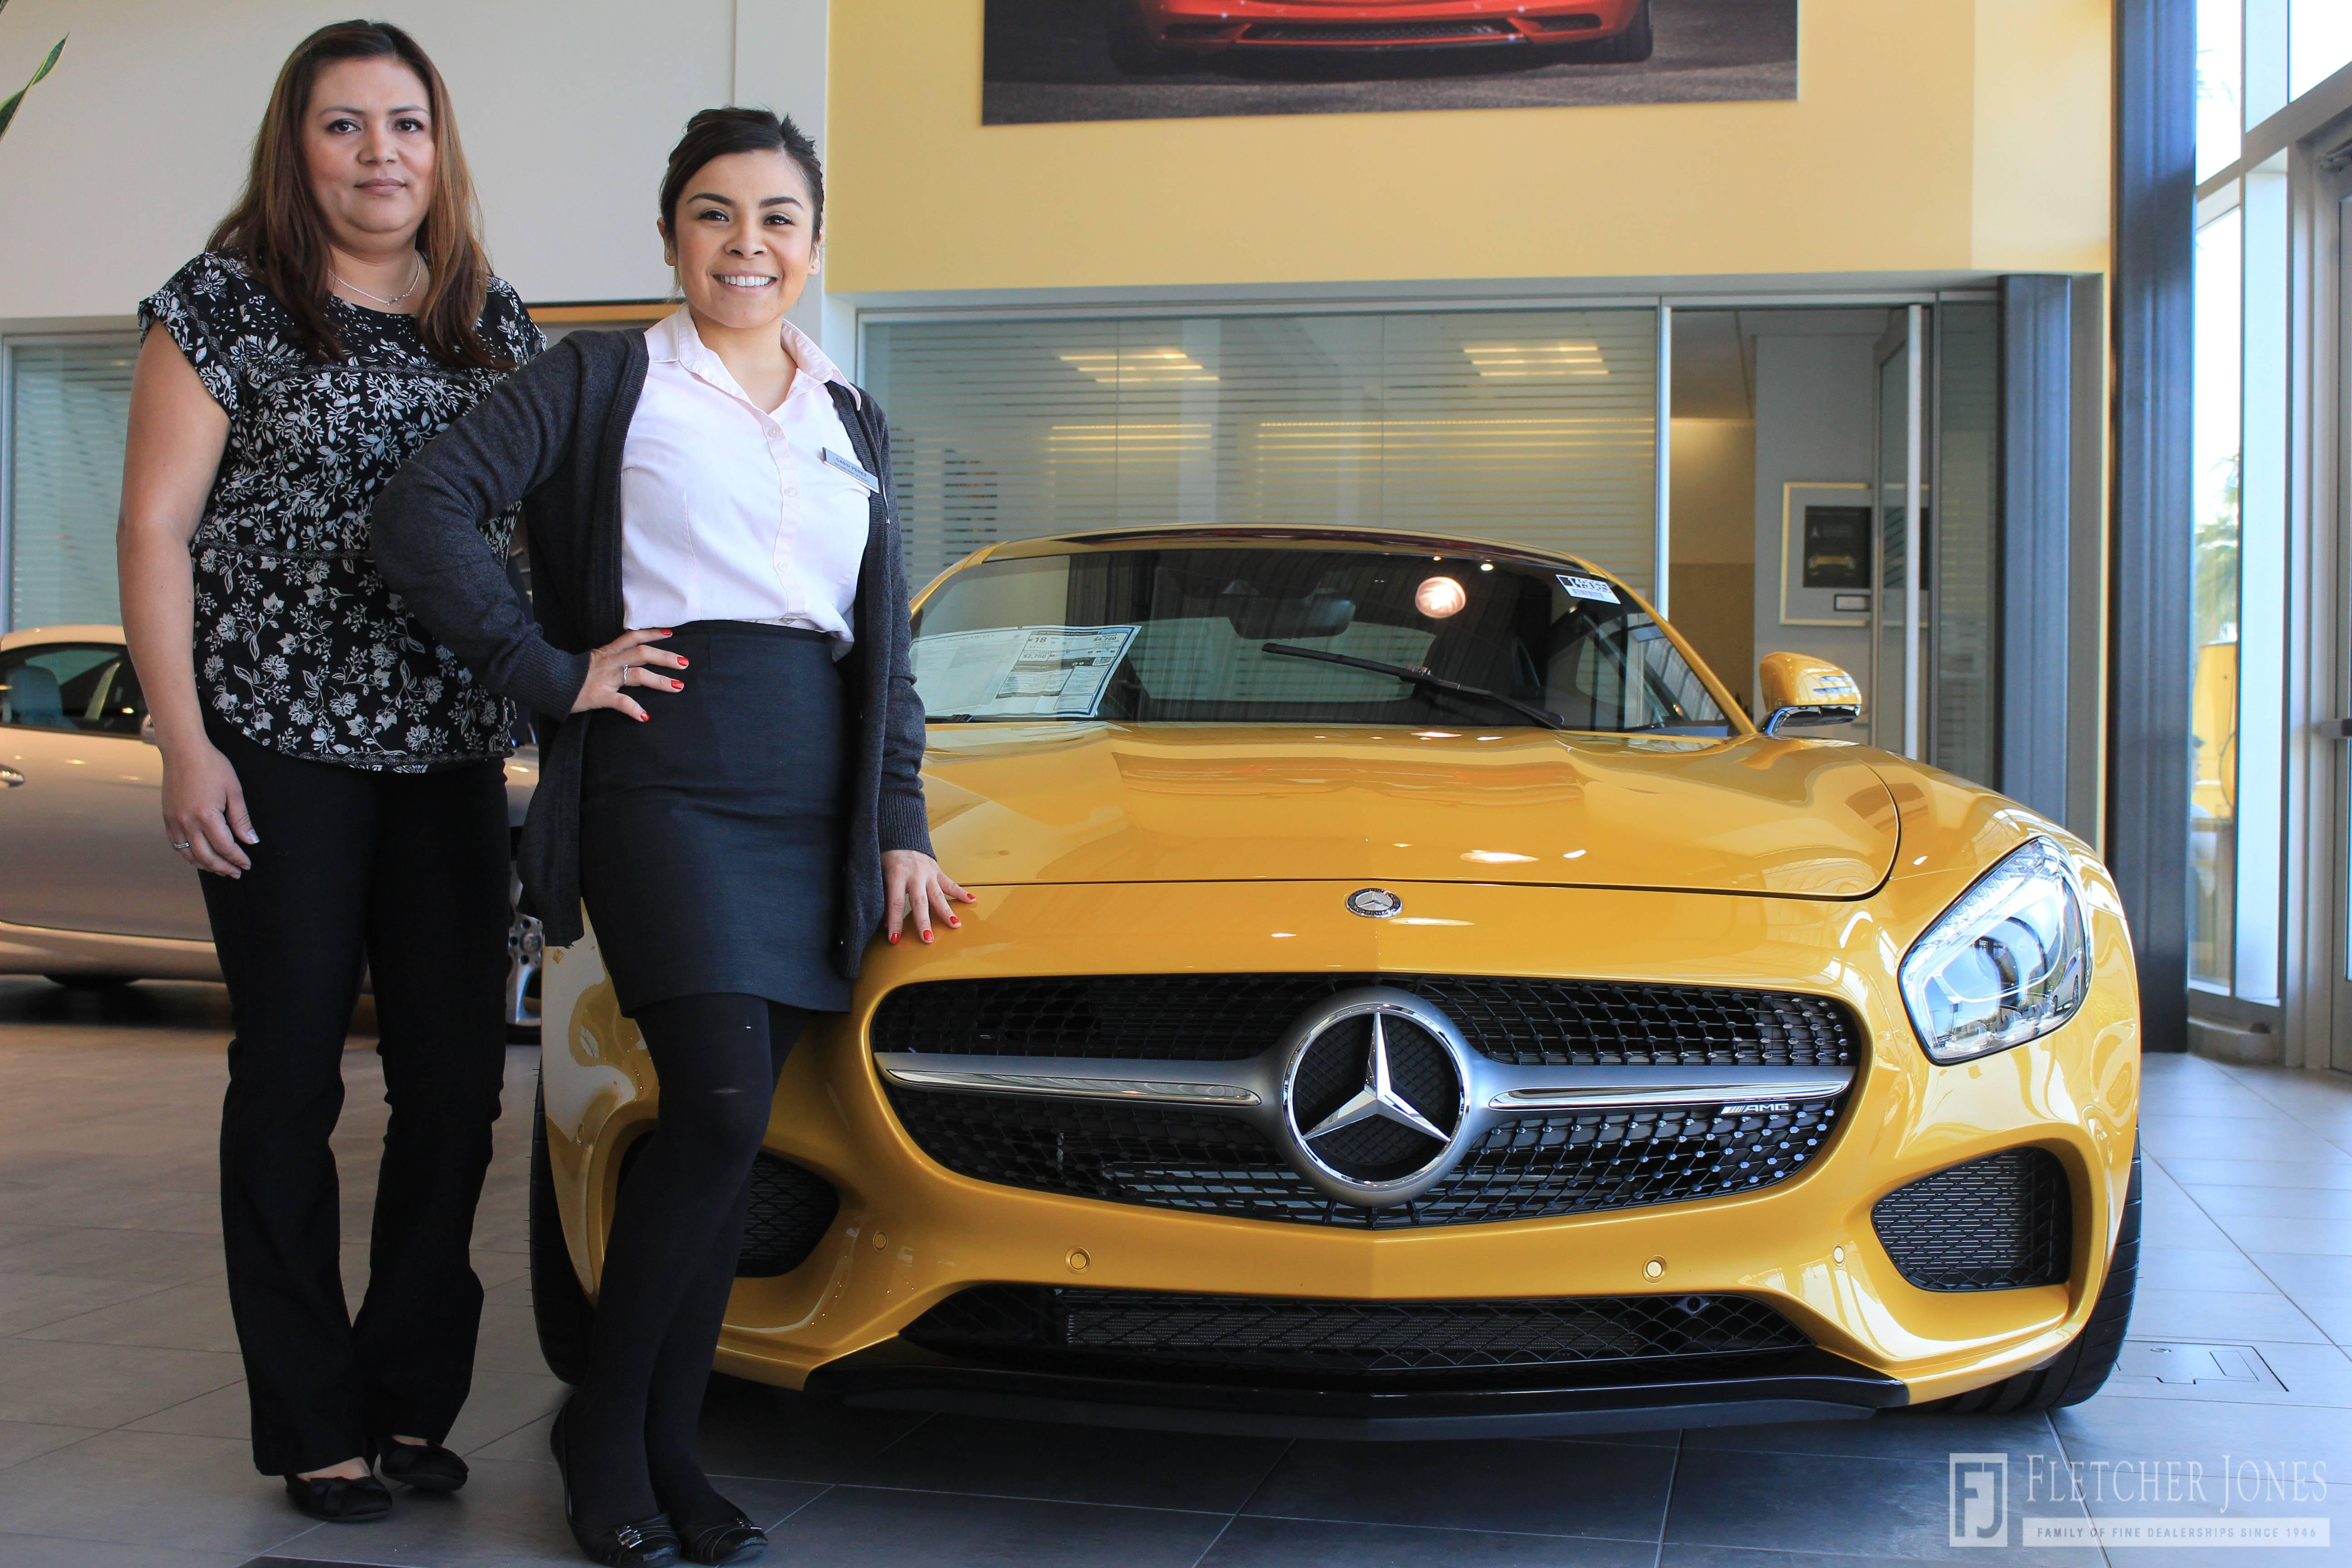 Fletcher jones international women s day mercedes benz for Mercedes benz ontario dealers